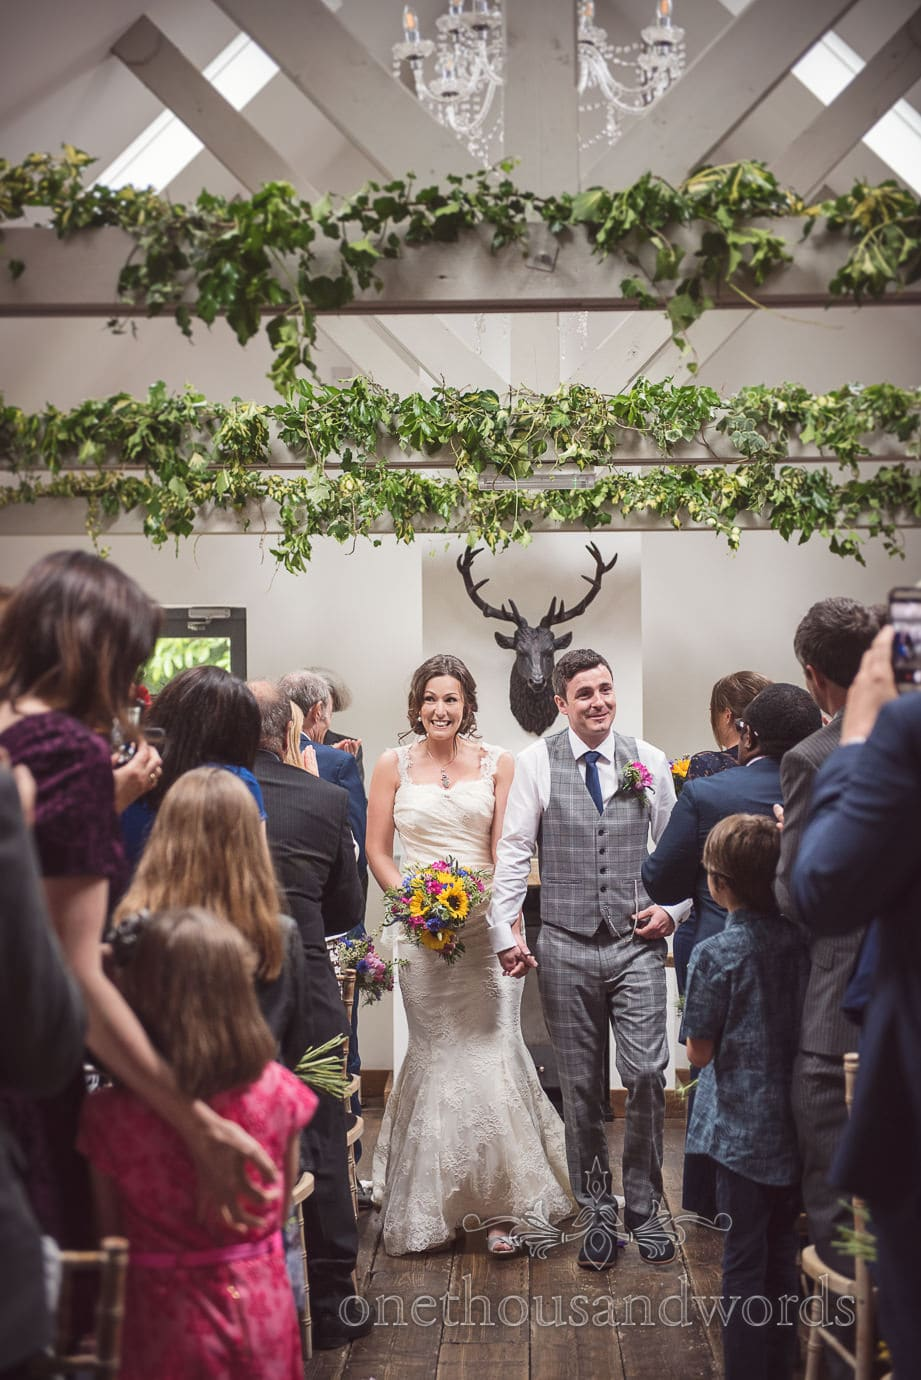 Bride and groom walk down the aisle at The Old Vicarage Orangery wedding ceremony